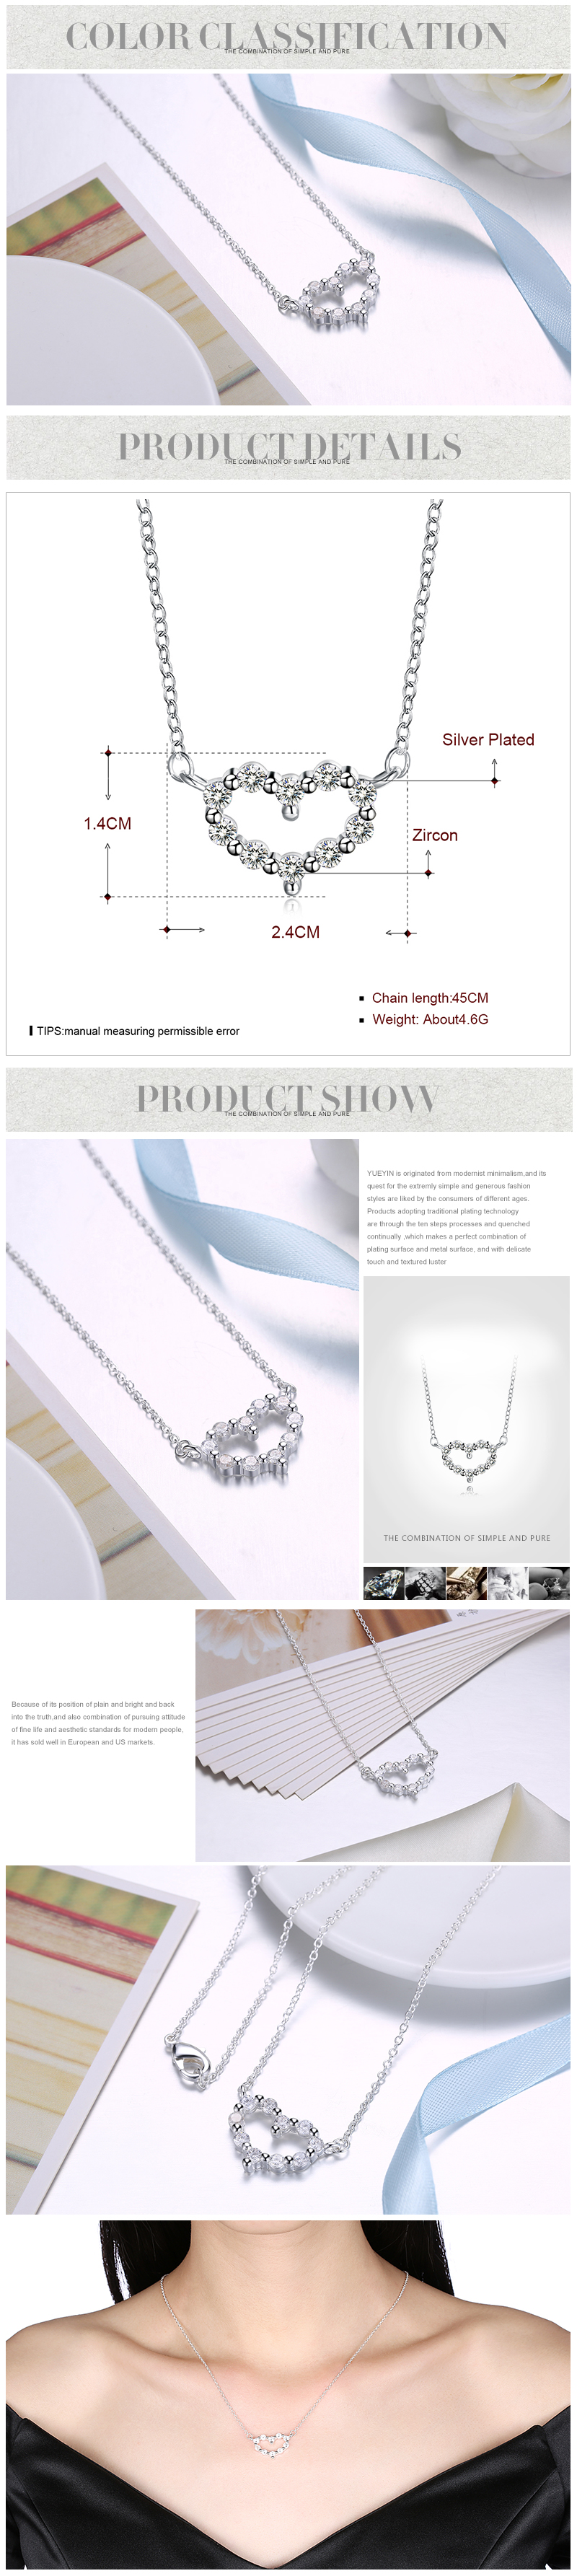 Necklaces NHKL12266-B